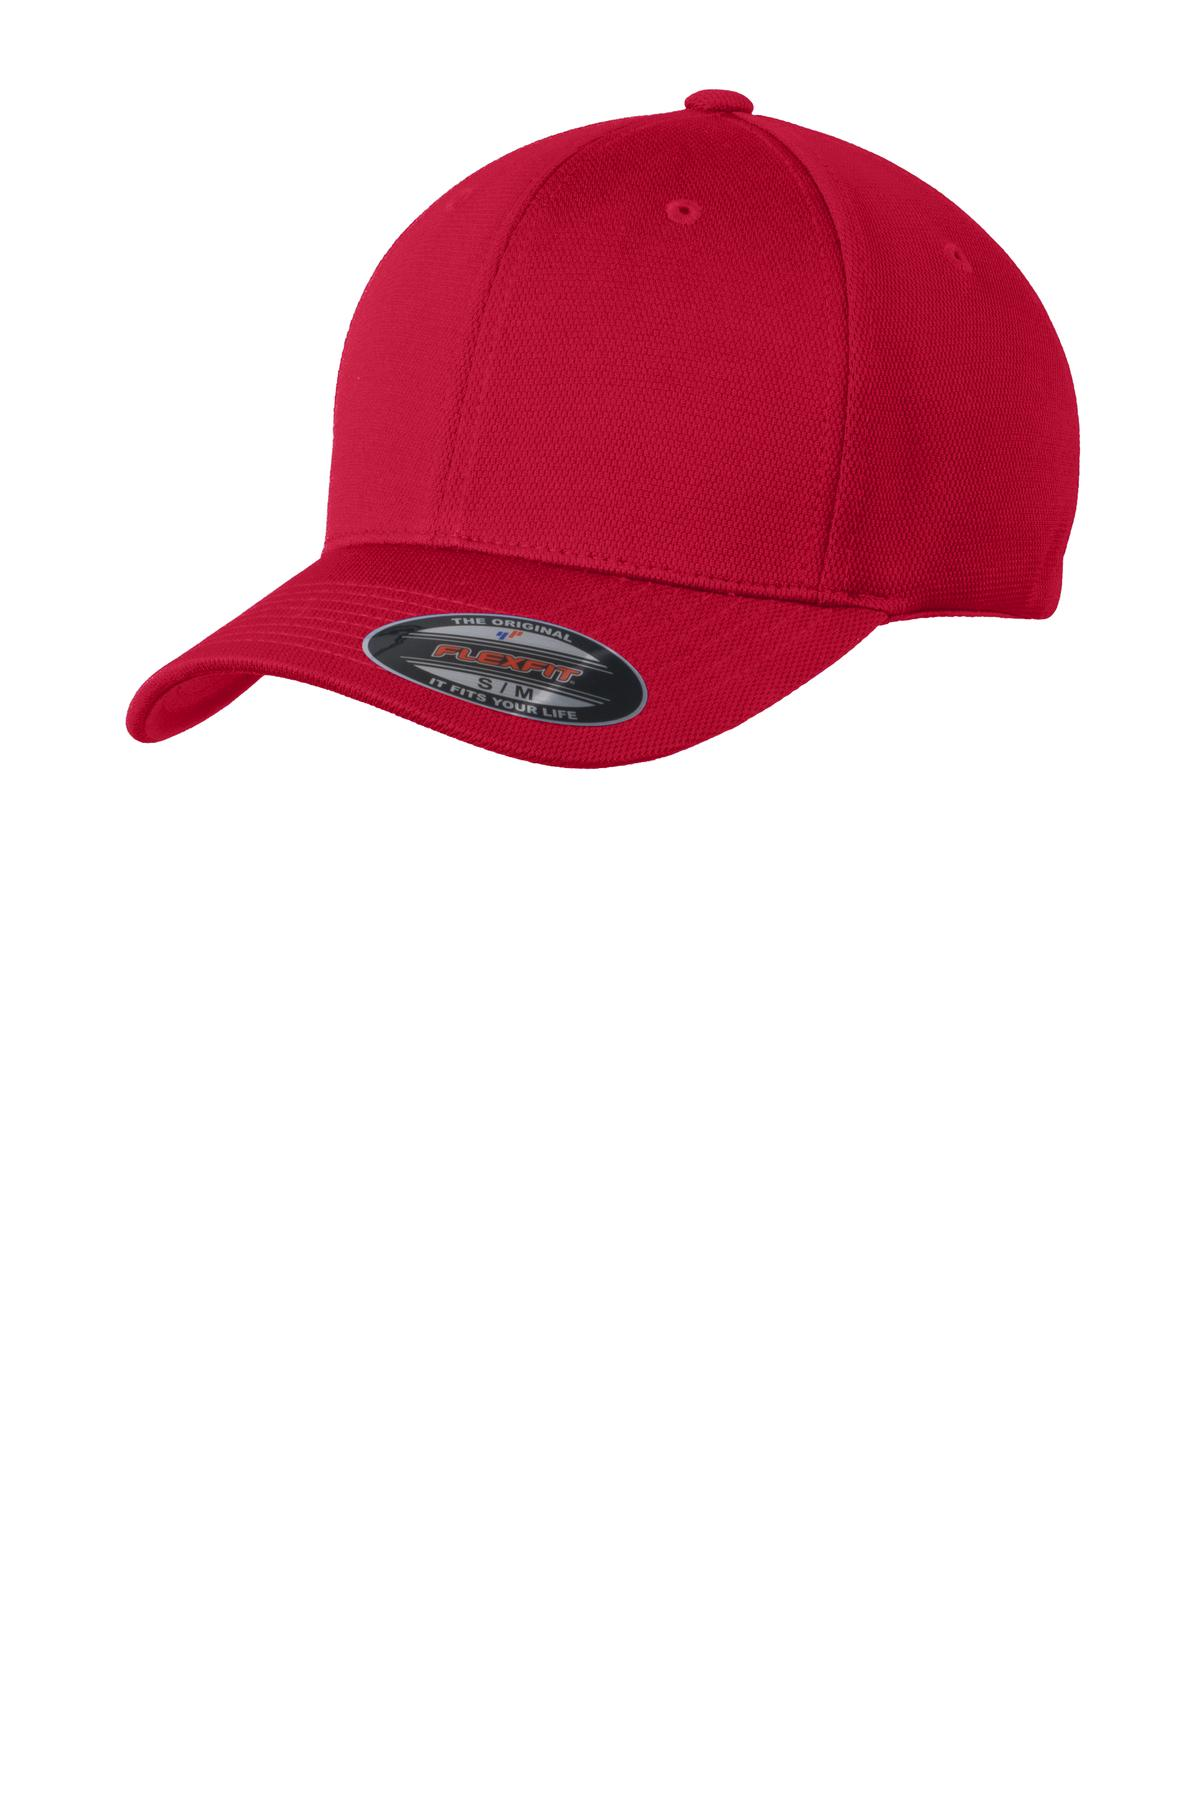 Sport-Tek ®  Flexfit ®  Cool & Dry Poly Block Mesh Cap. STC22 - True Red